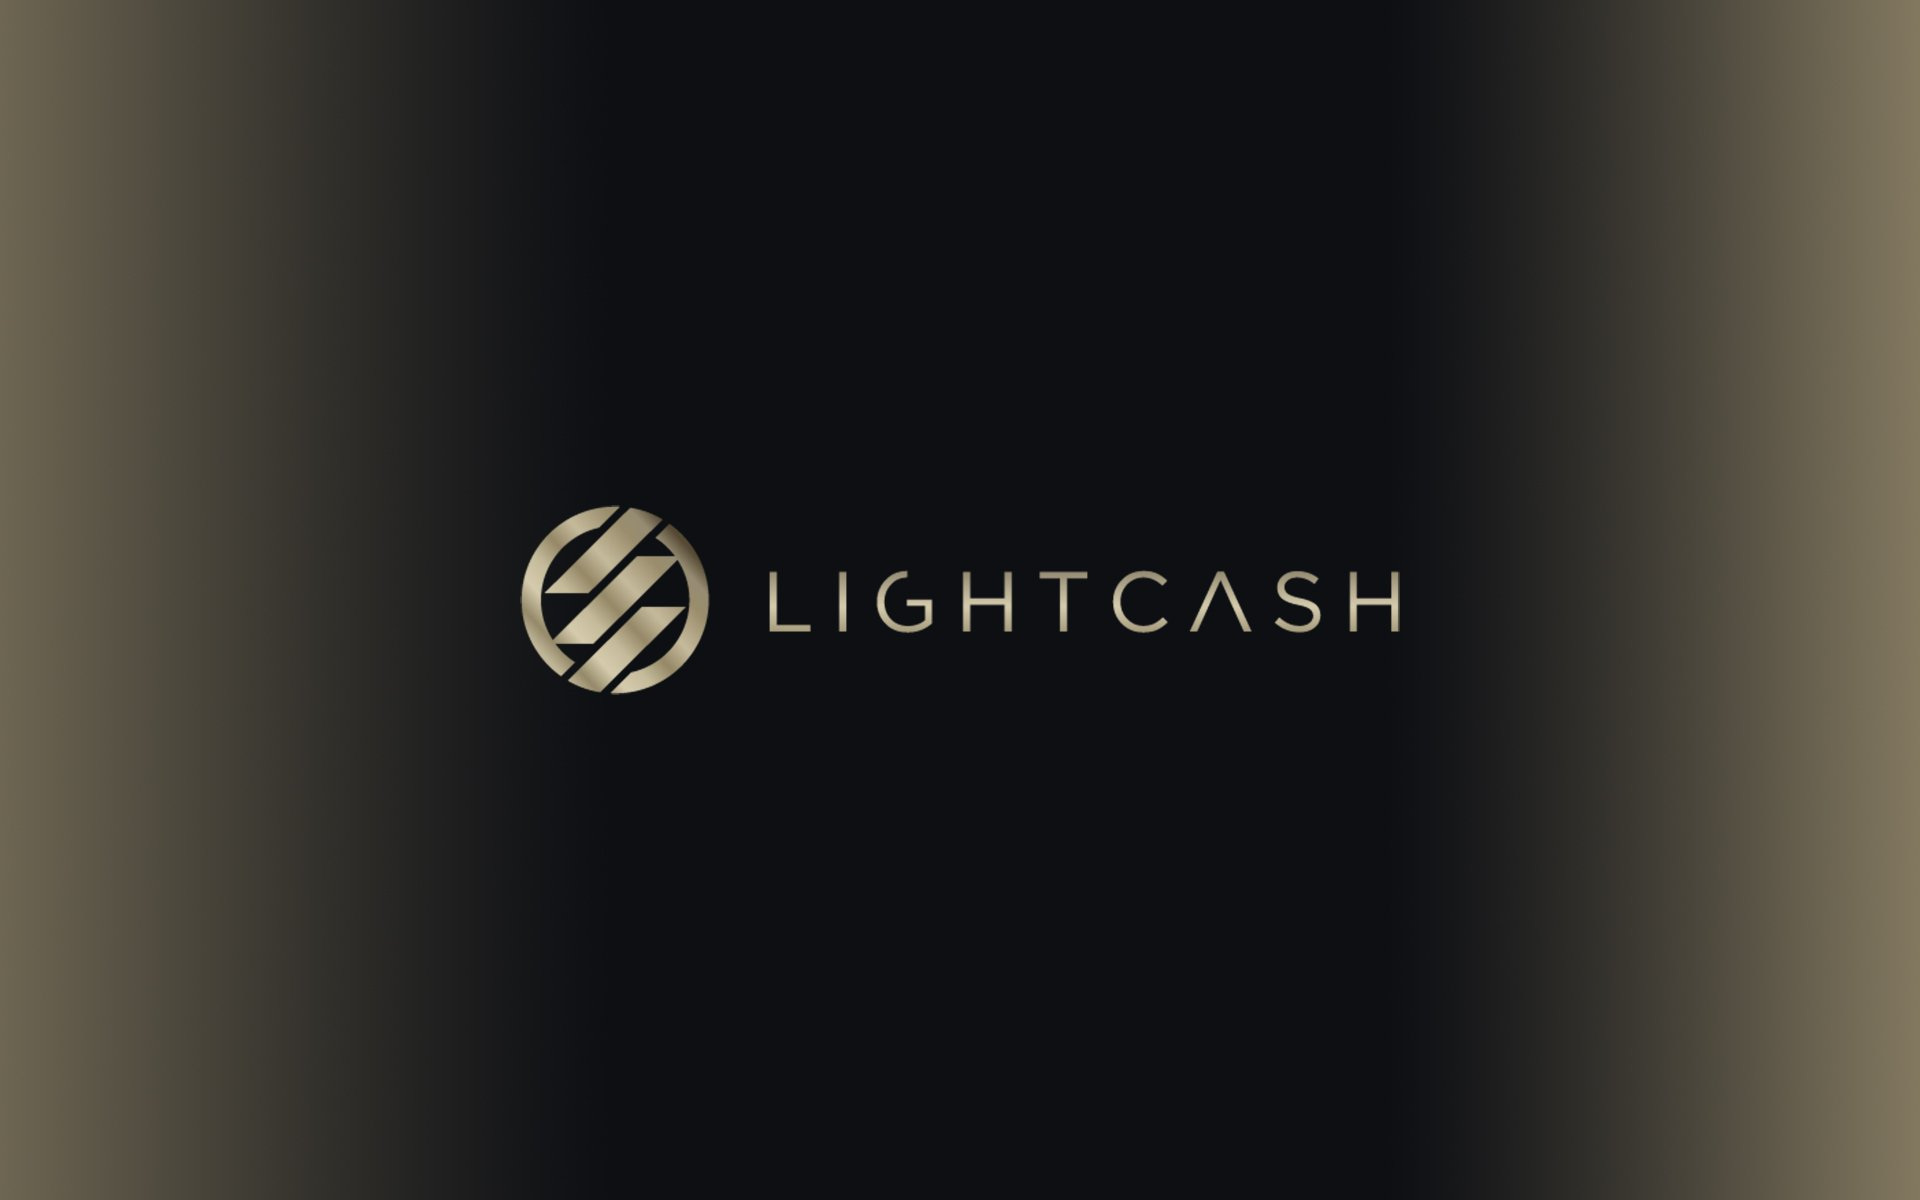 Lightcash Announces Gold Backed ICO After Launch of Cryptocurrency Exchange That Will Integrate World Fiat Economies With The Blockchain